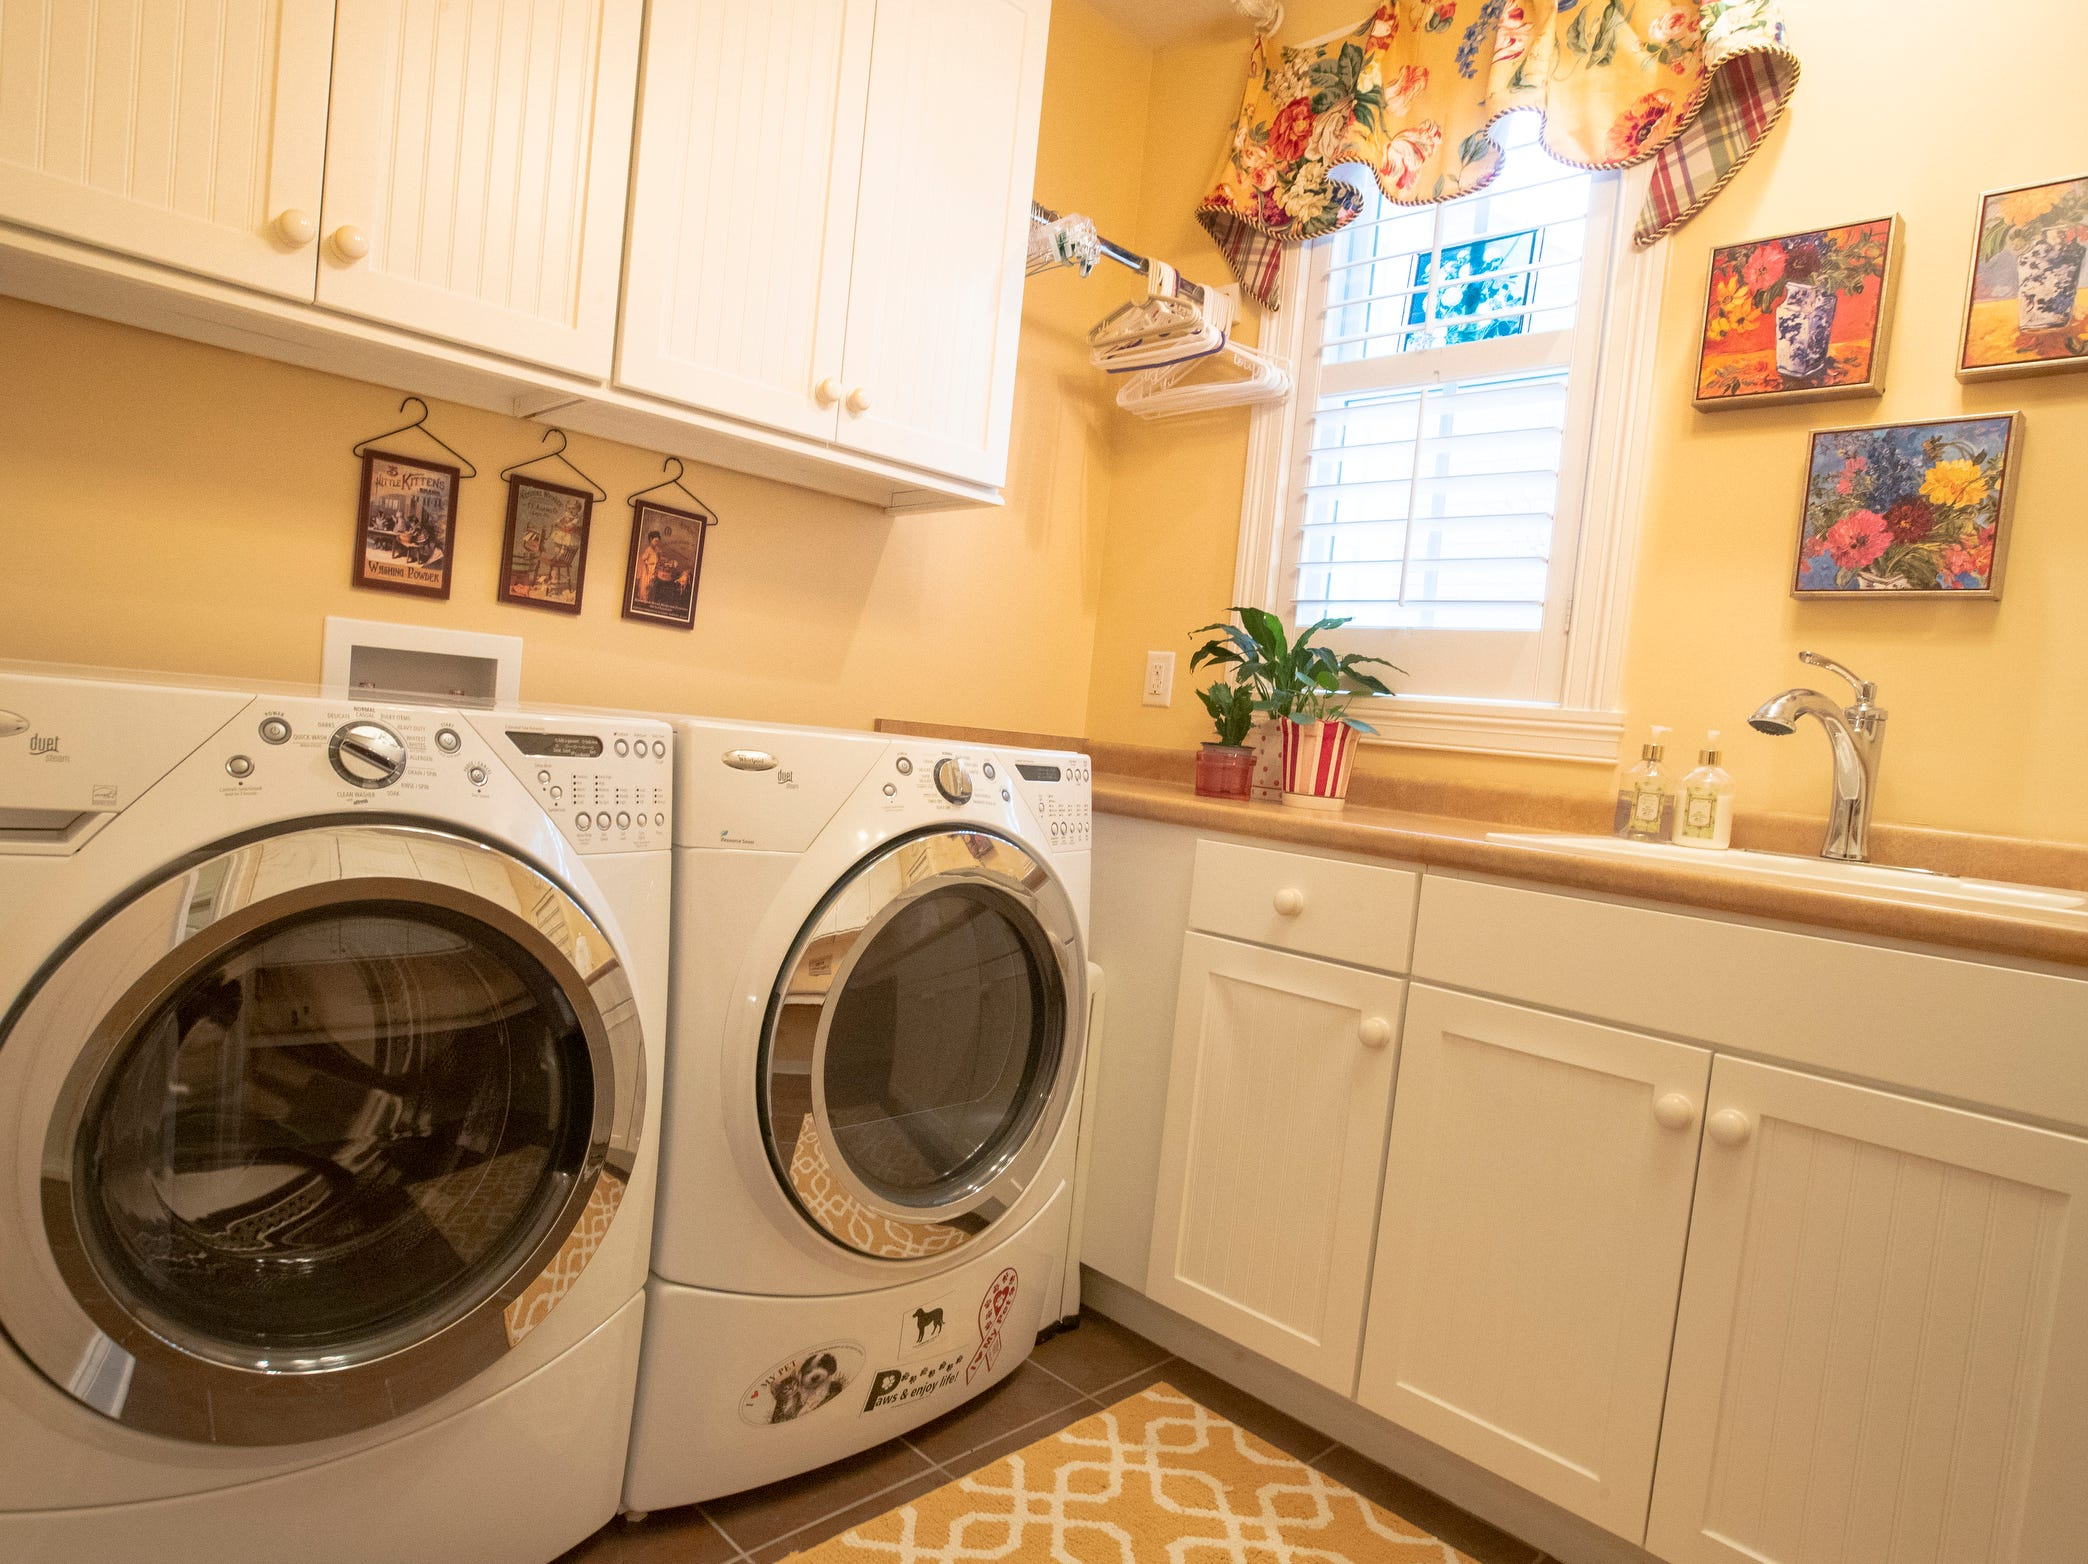 A laundry room inside a thirteen-year-old Victorian home in the Village of West Clay, Carmel, March 20, 2019. The house includes 16 rooms with five bedrooms, 8,348 square feet, and is listed at $1.275 million.